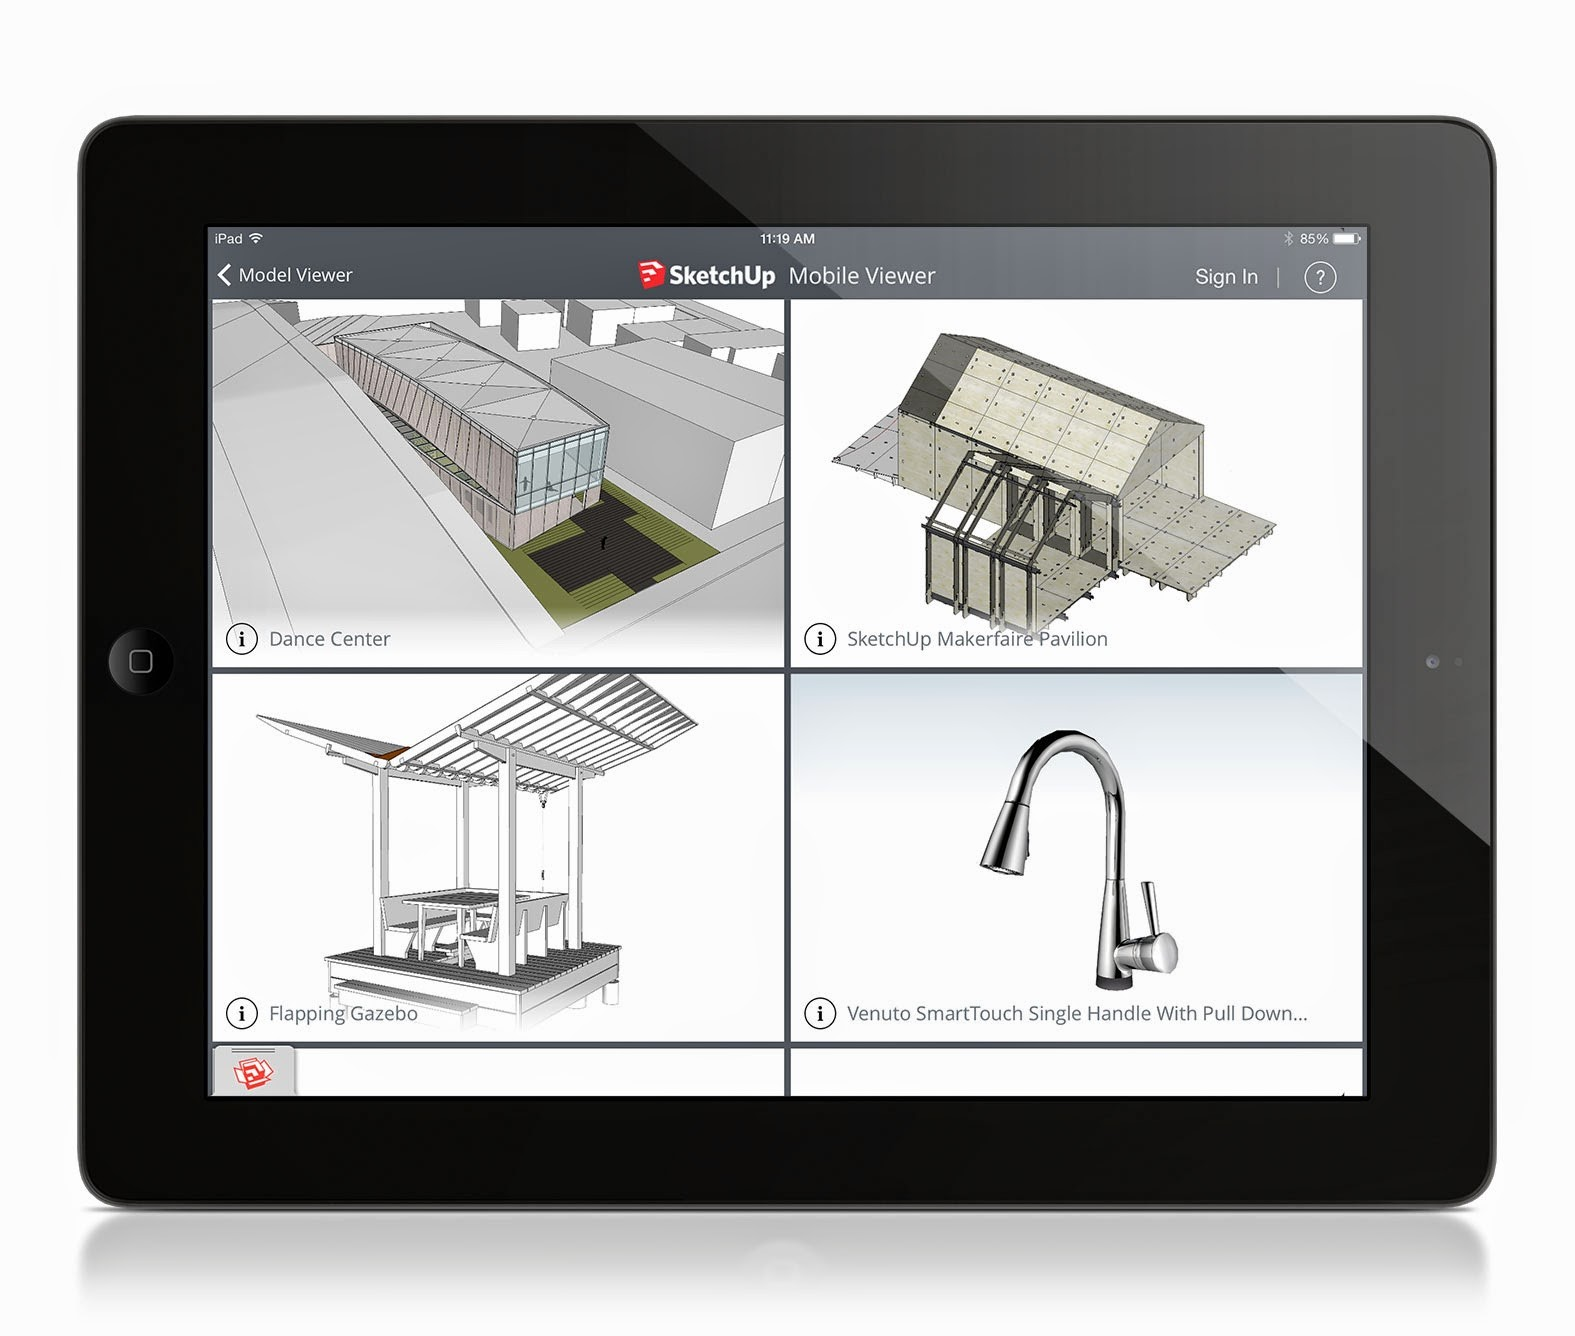 3d Zeichnen Programm Kostenlos Sketchup Announces Mobile Viewer For Ipad Archdaily